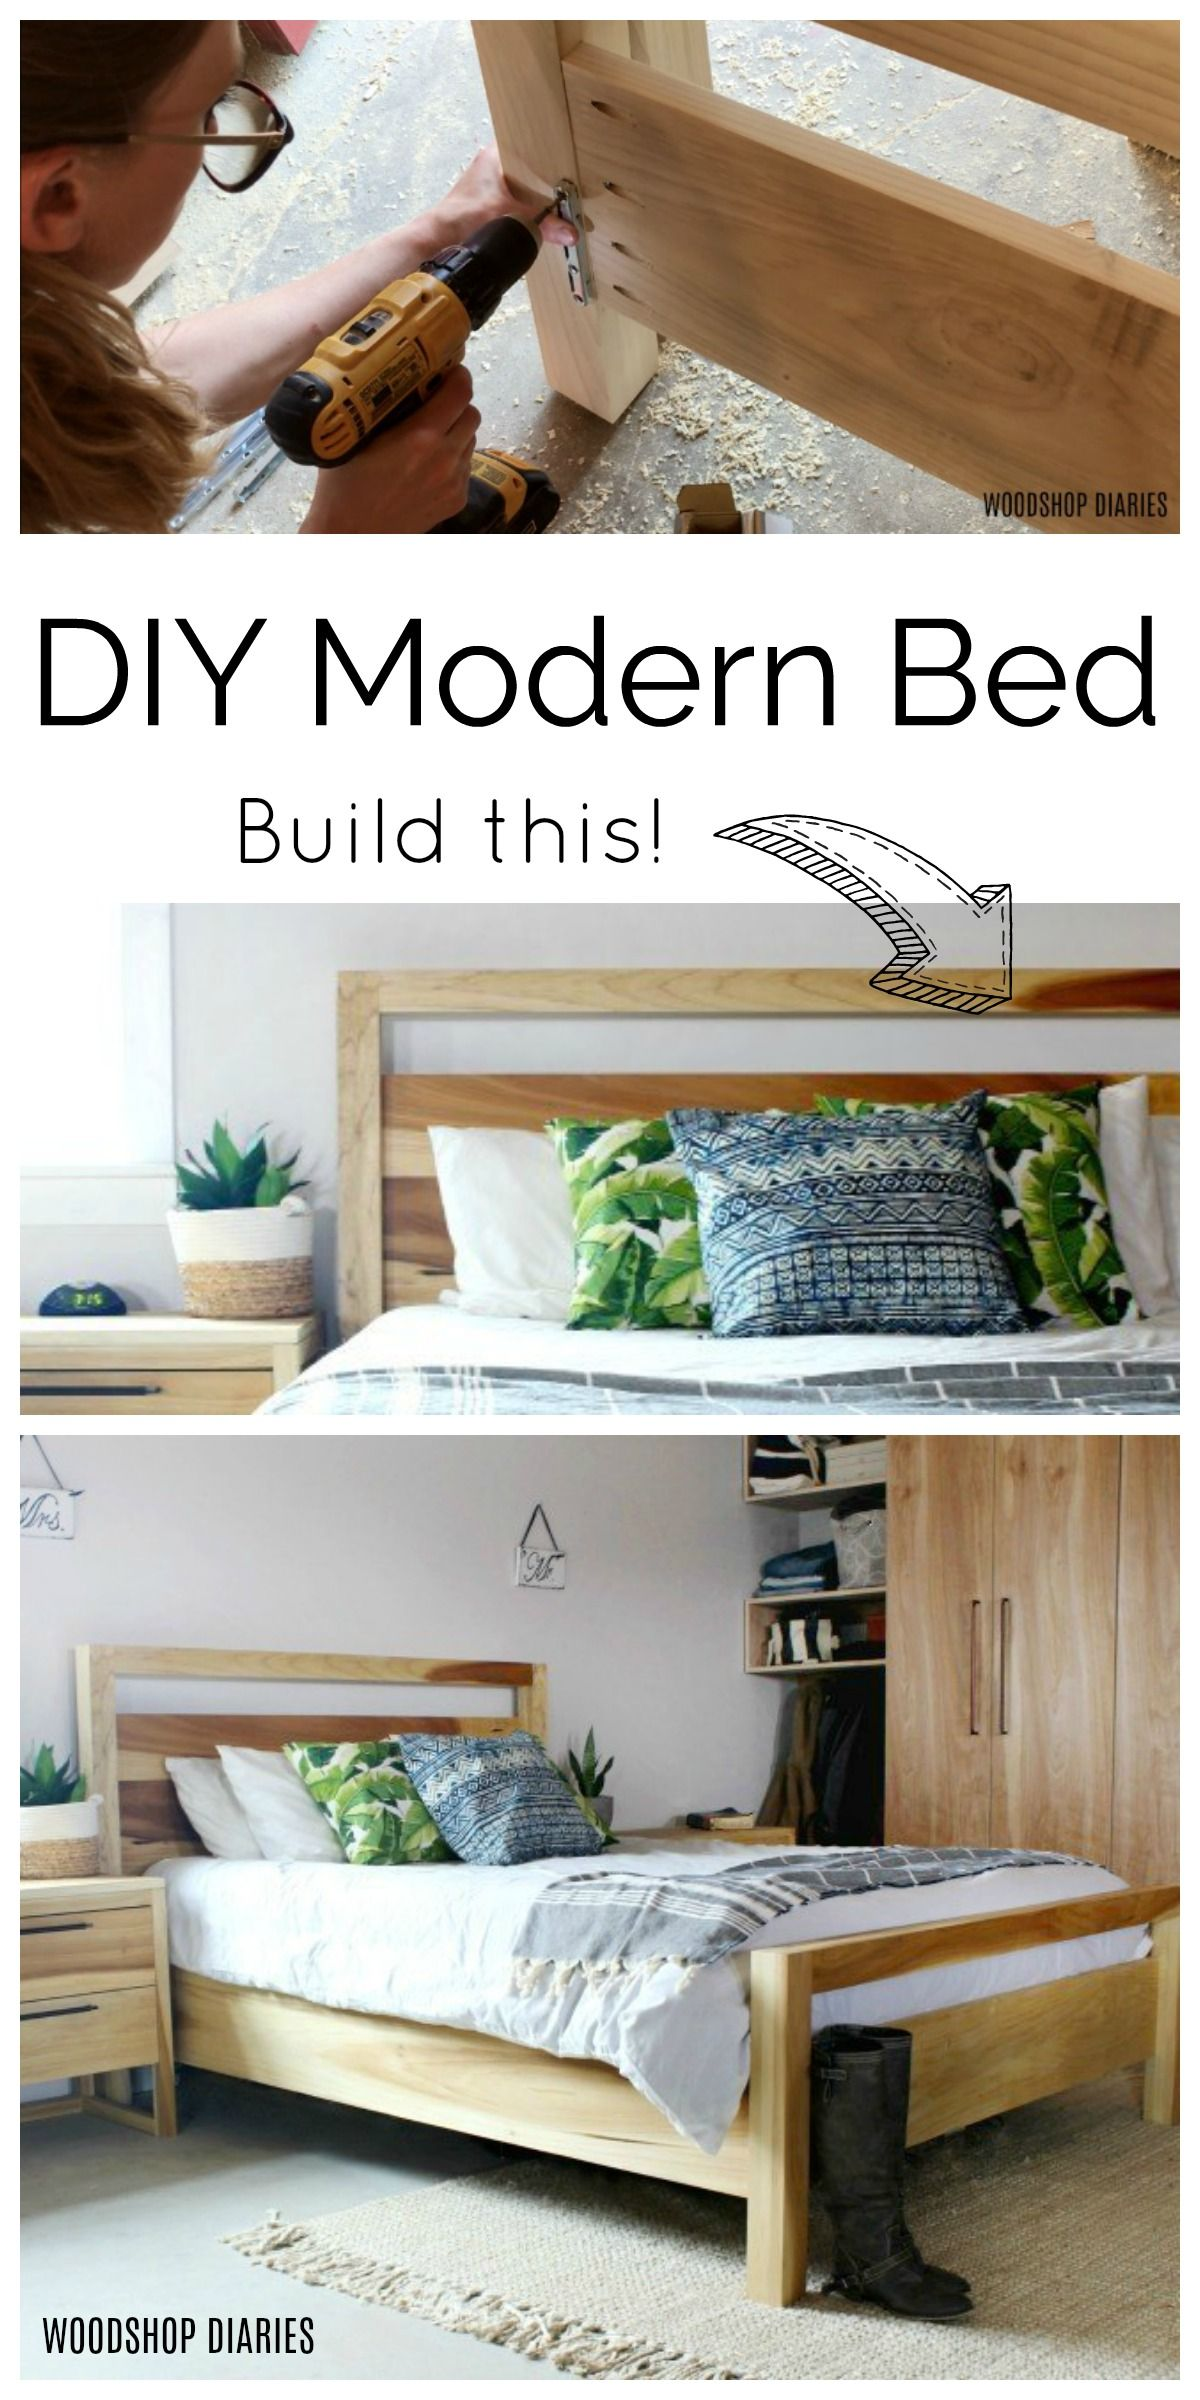 Photo of How to Build a DIY Modern Bed